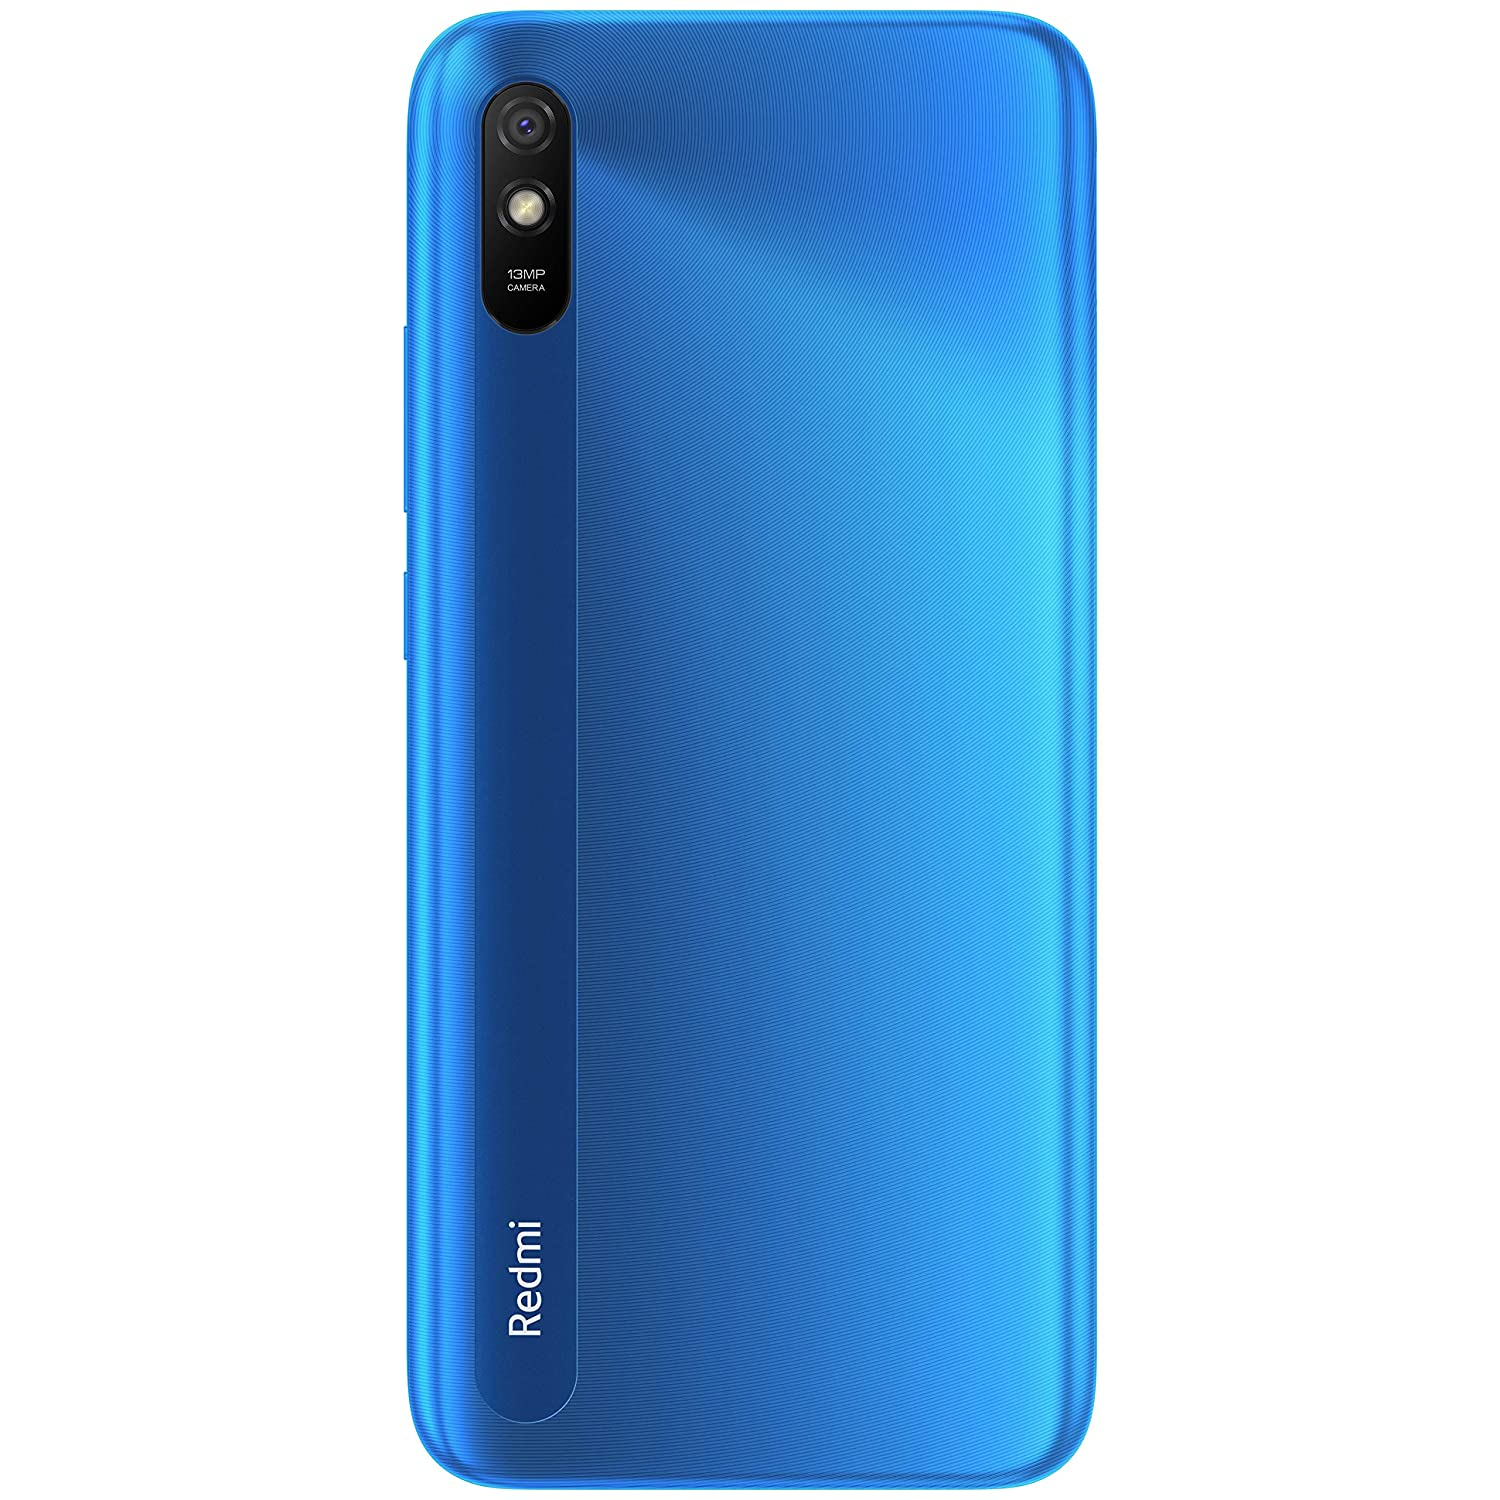 Redmi 9A 3GB RAM,32GB internal Memory (Sea Blue)